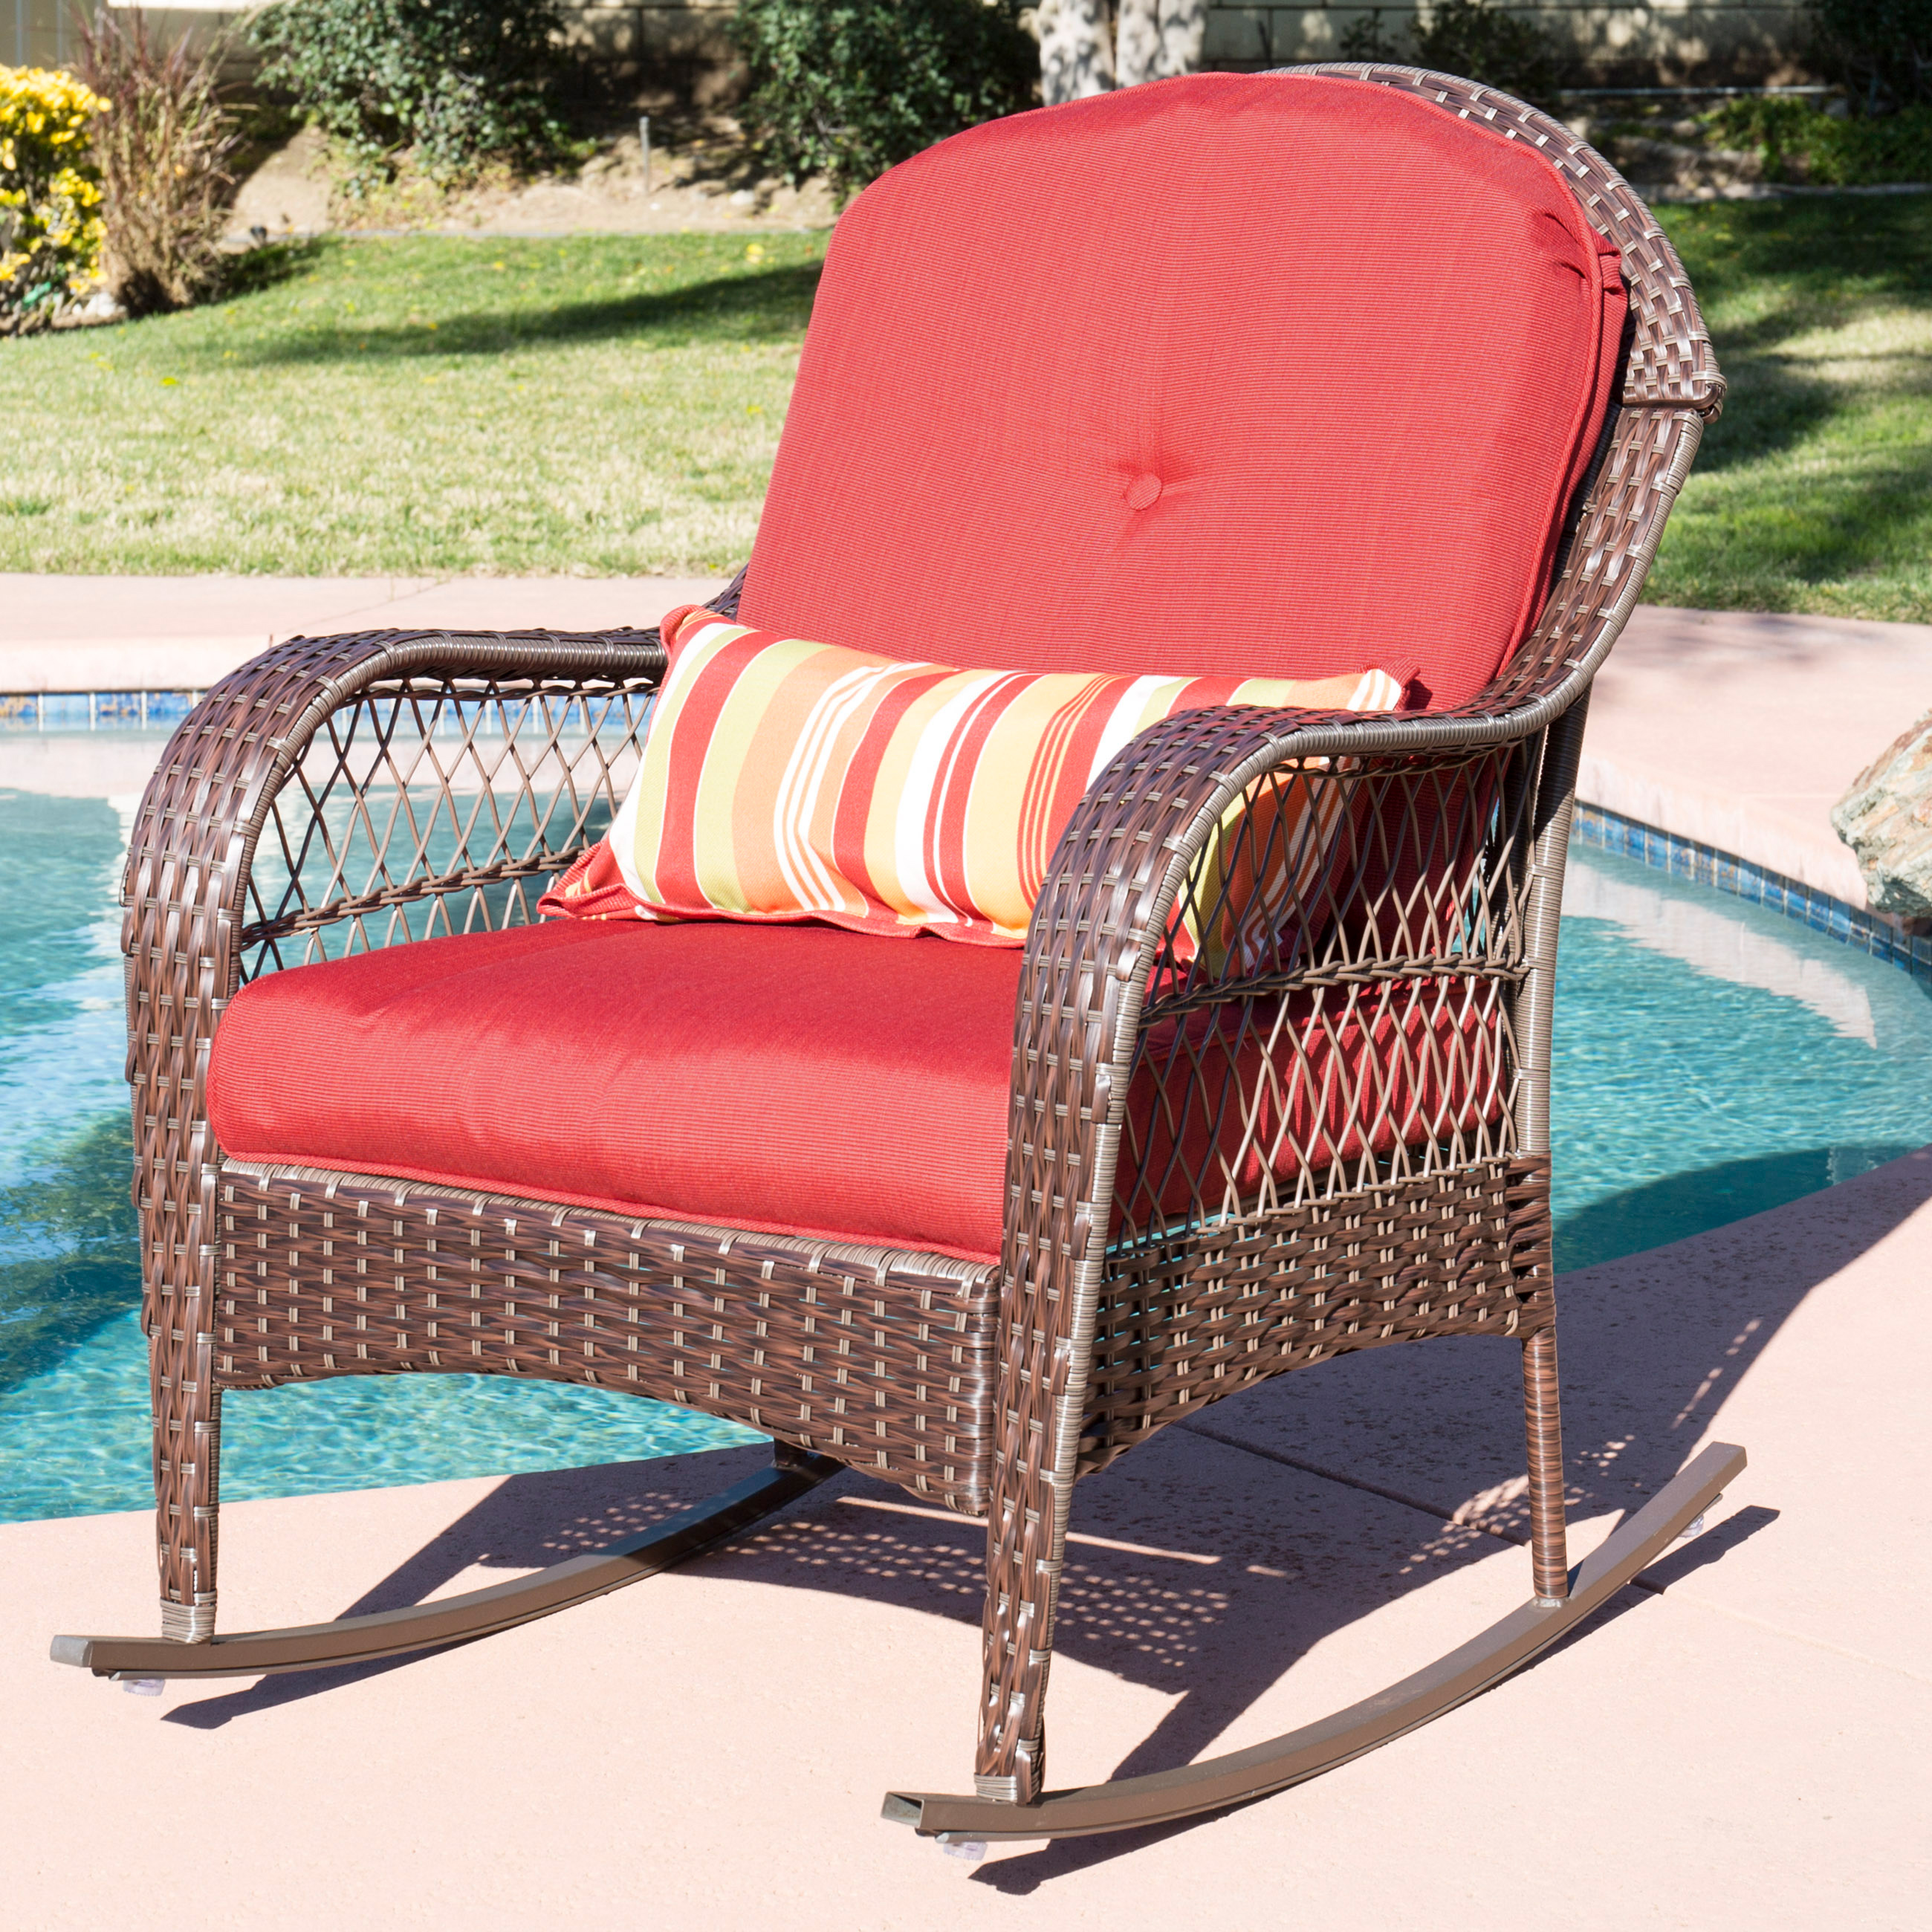 Simple Deck Rocking Chairs Patio Porch Furniture All Weather Proof W Cushions For Design Ideas